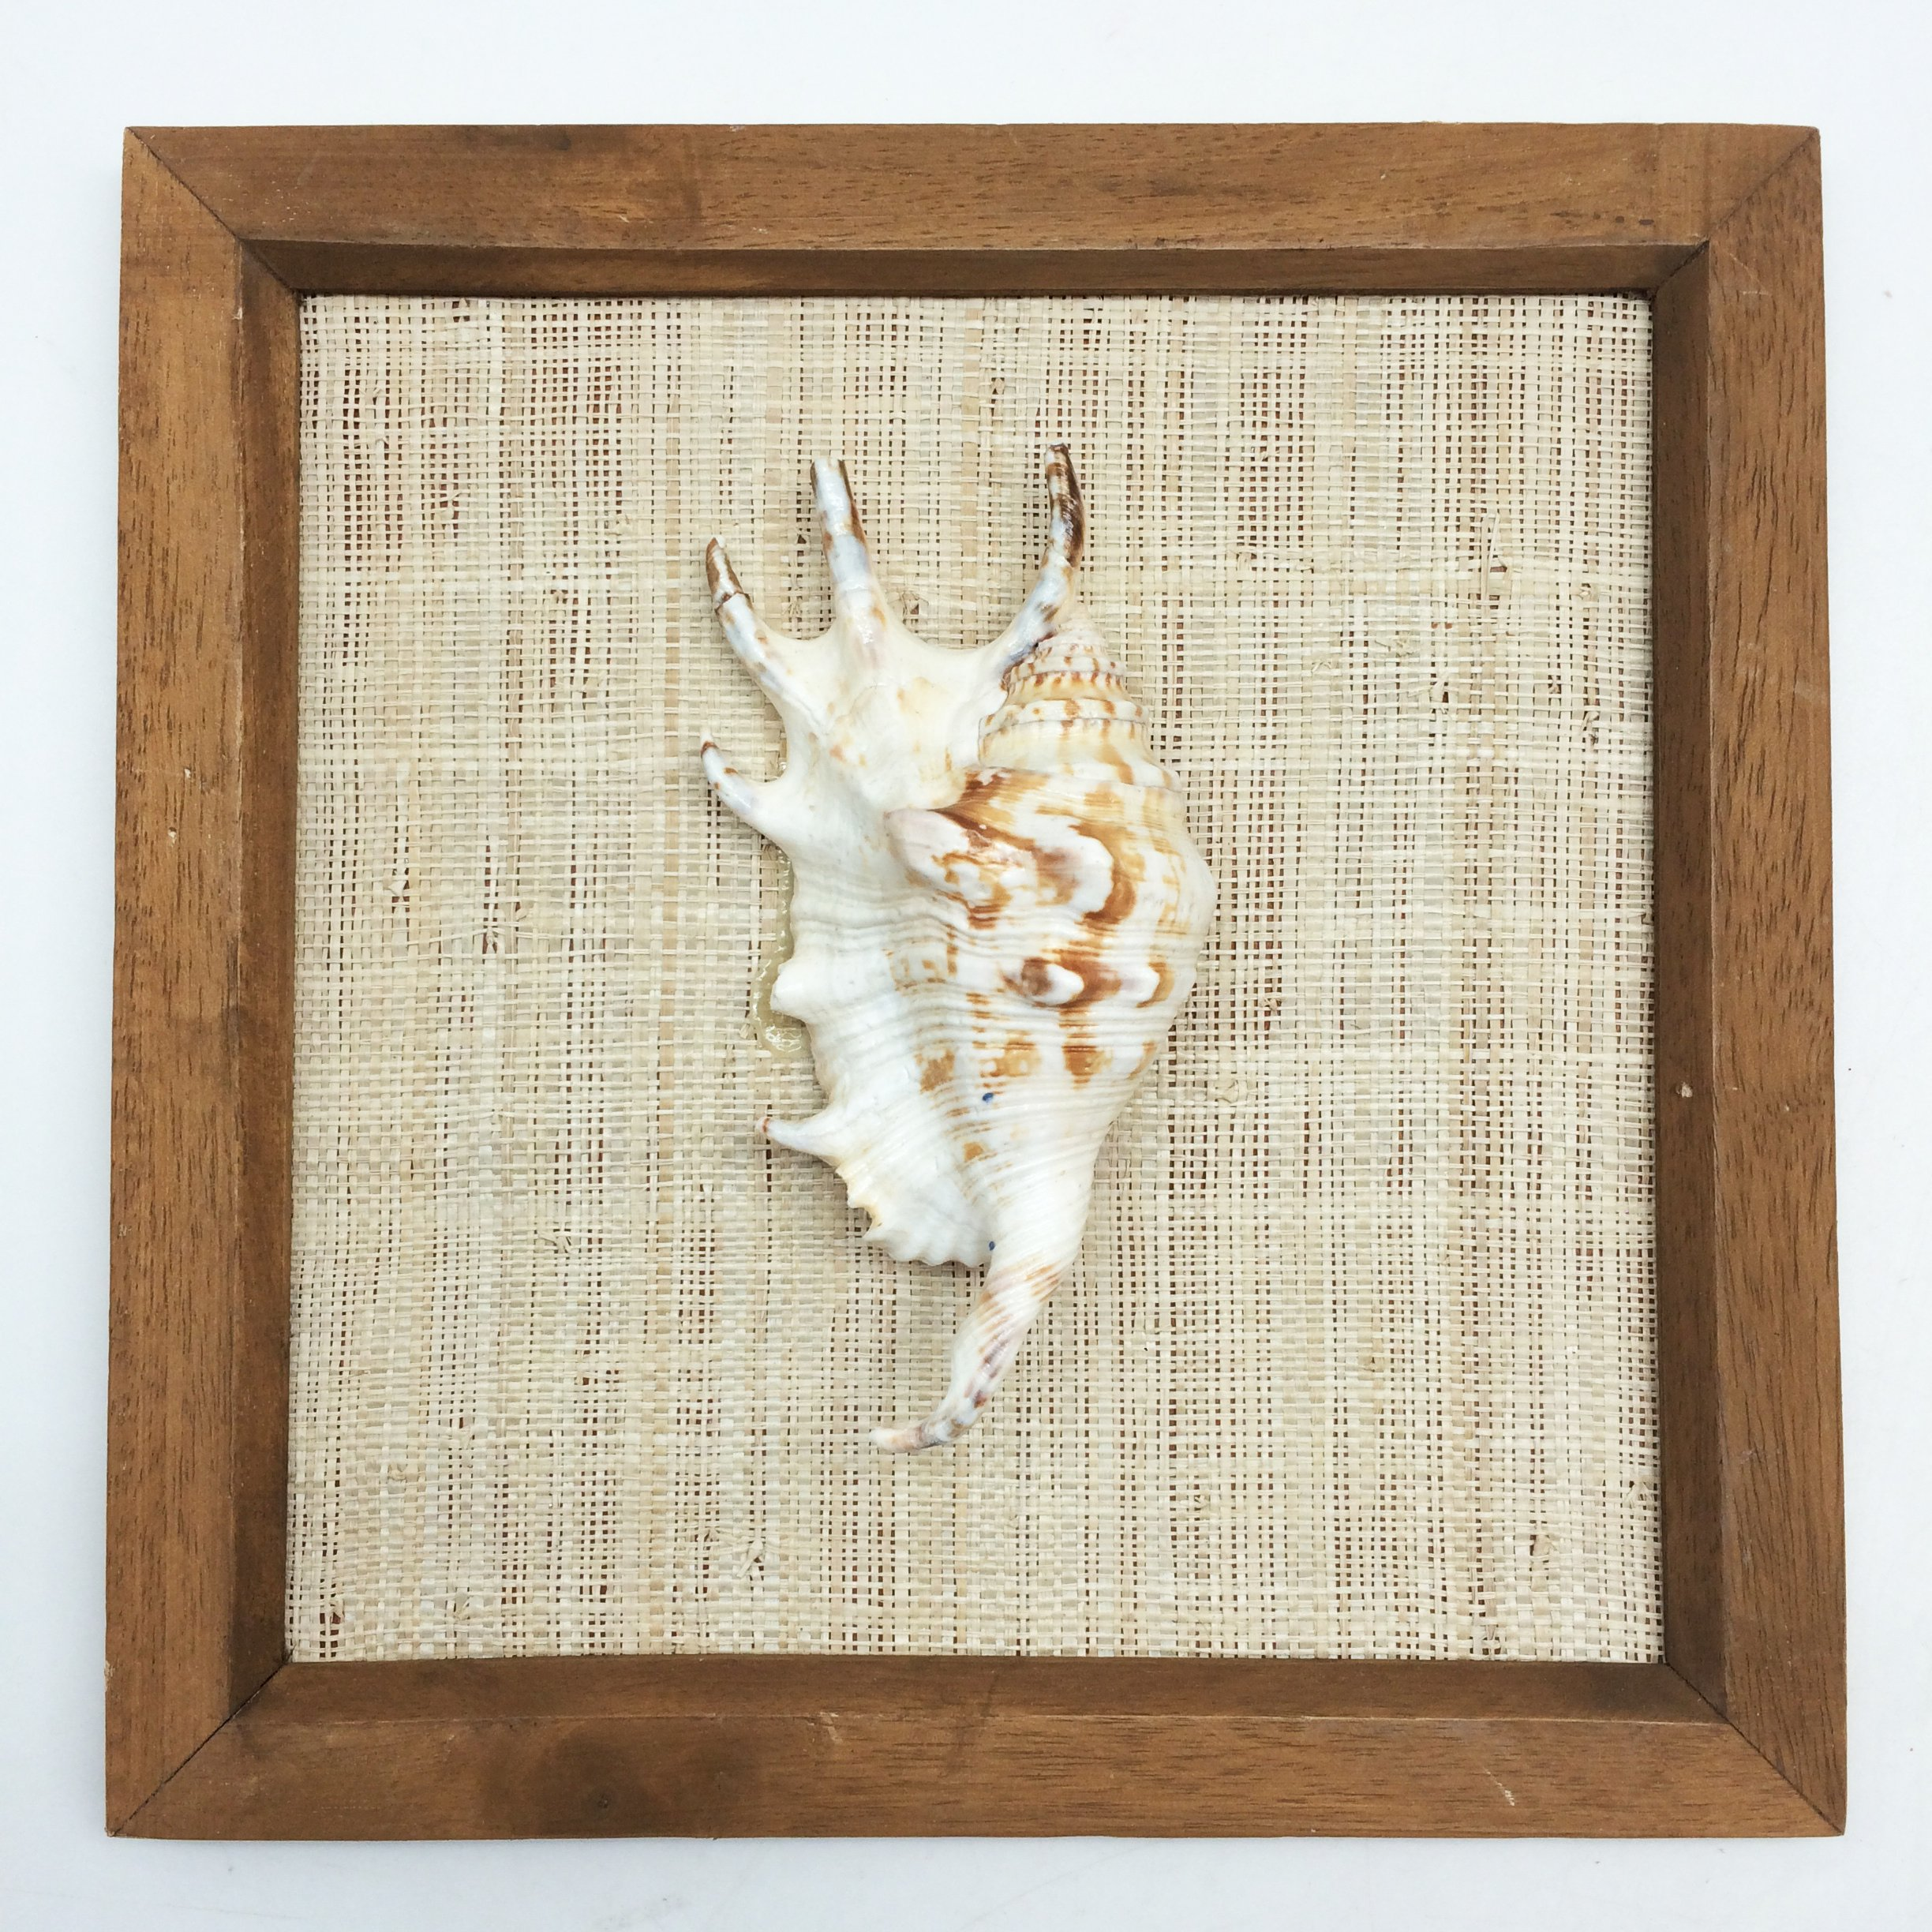 PEPPERLONELY 8x8 Inch Wood Framed Lambis Spider Conch Shell, Sea Shell Art Wall Décor by PEPPERLONELY (Image #1)